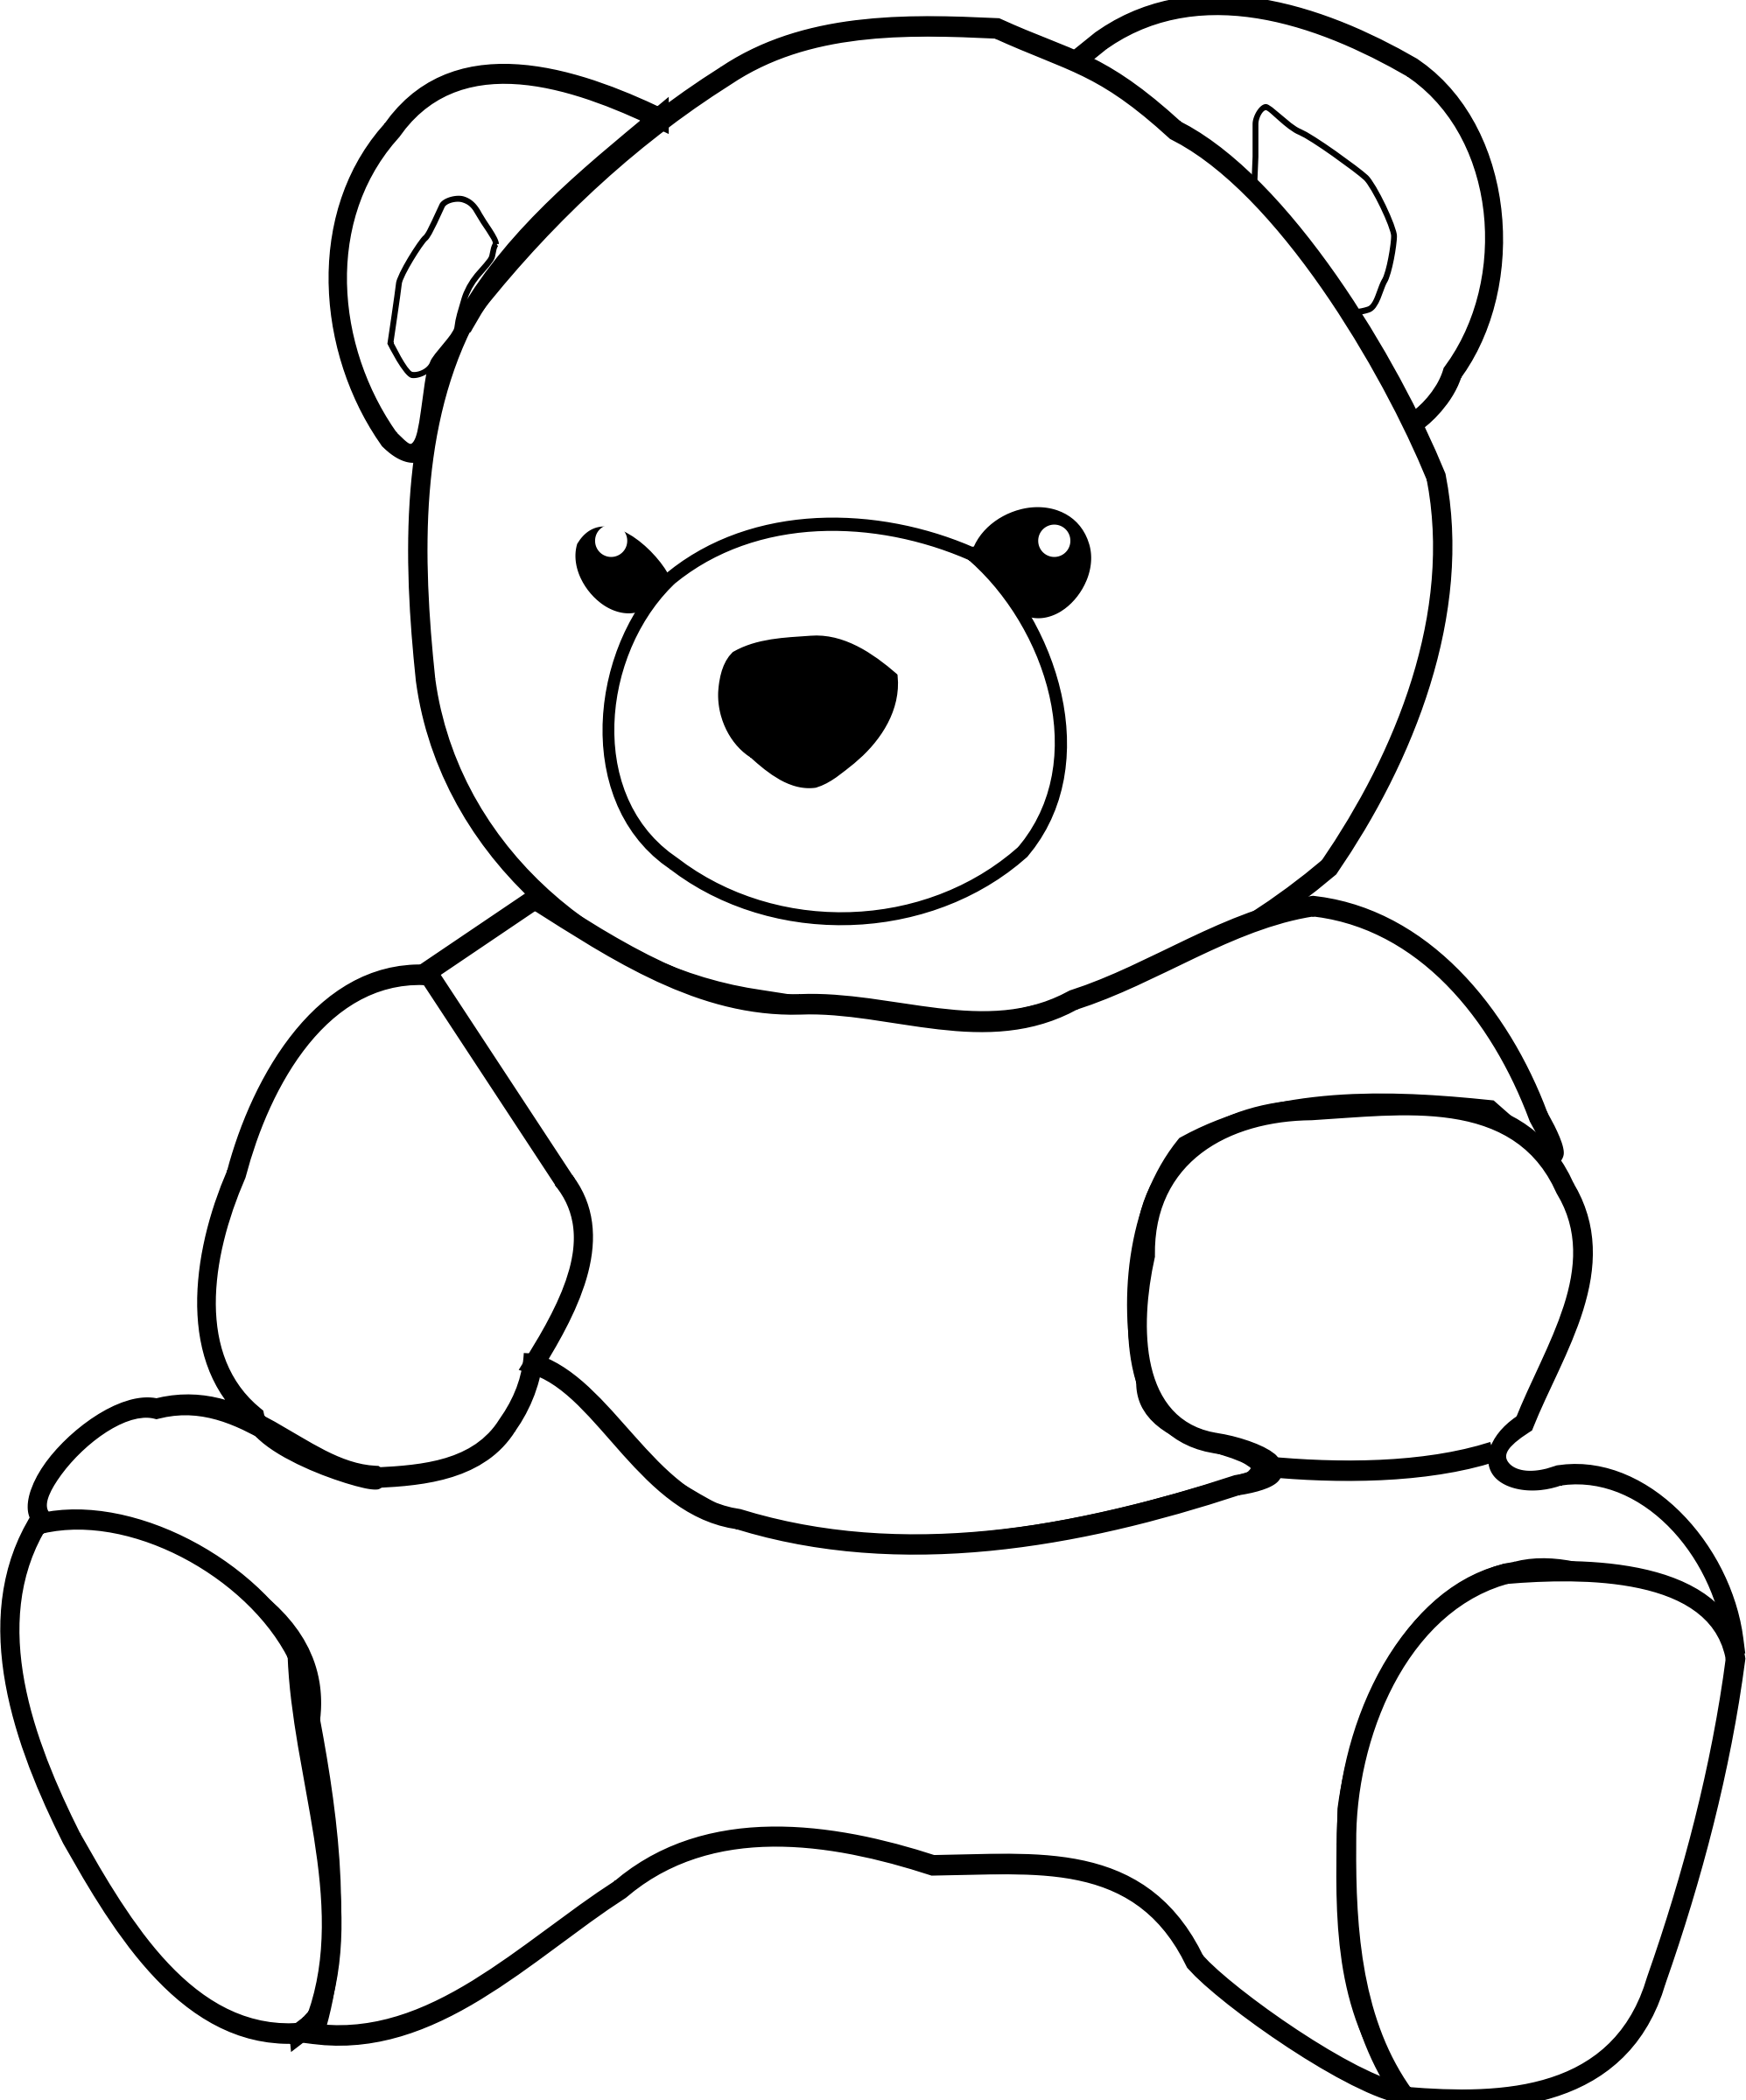 Teddy Bear Clip Art Black And White Download Free Teddy